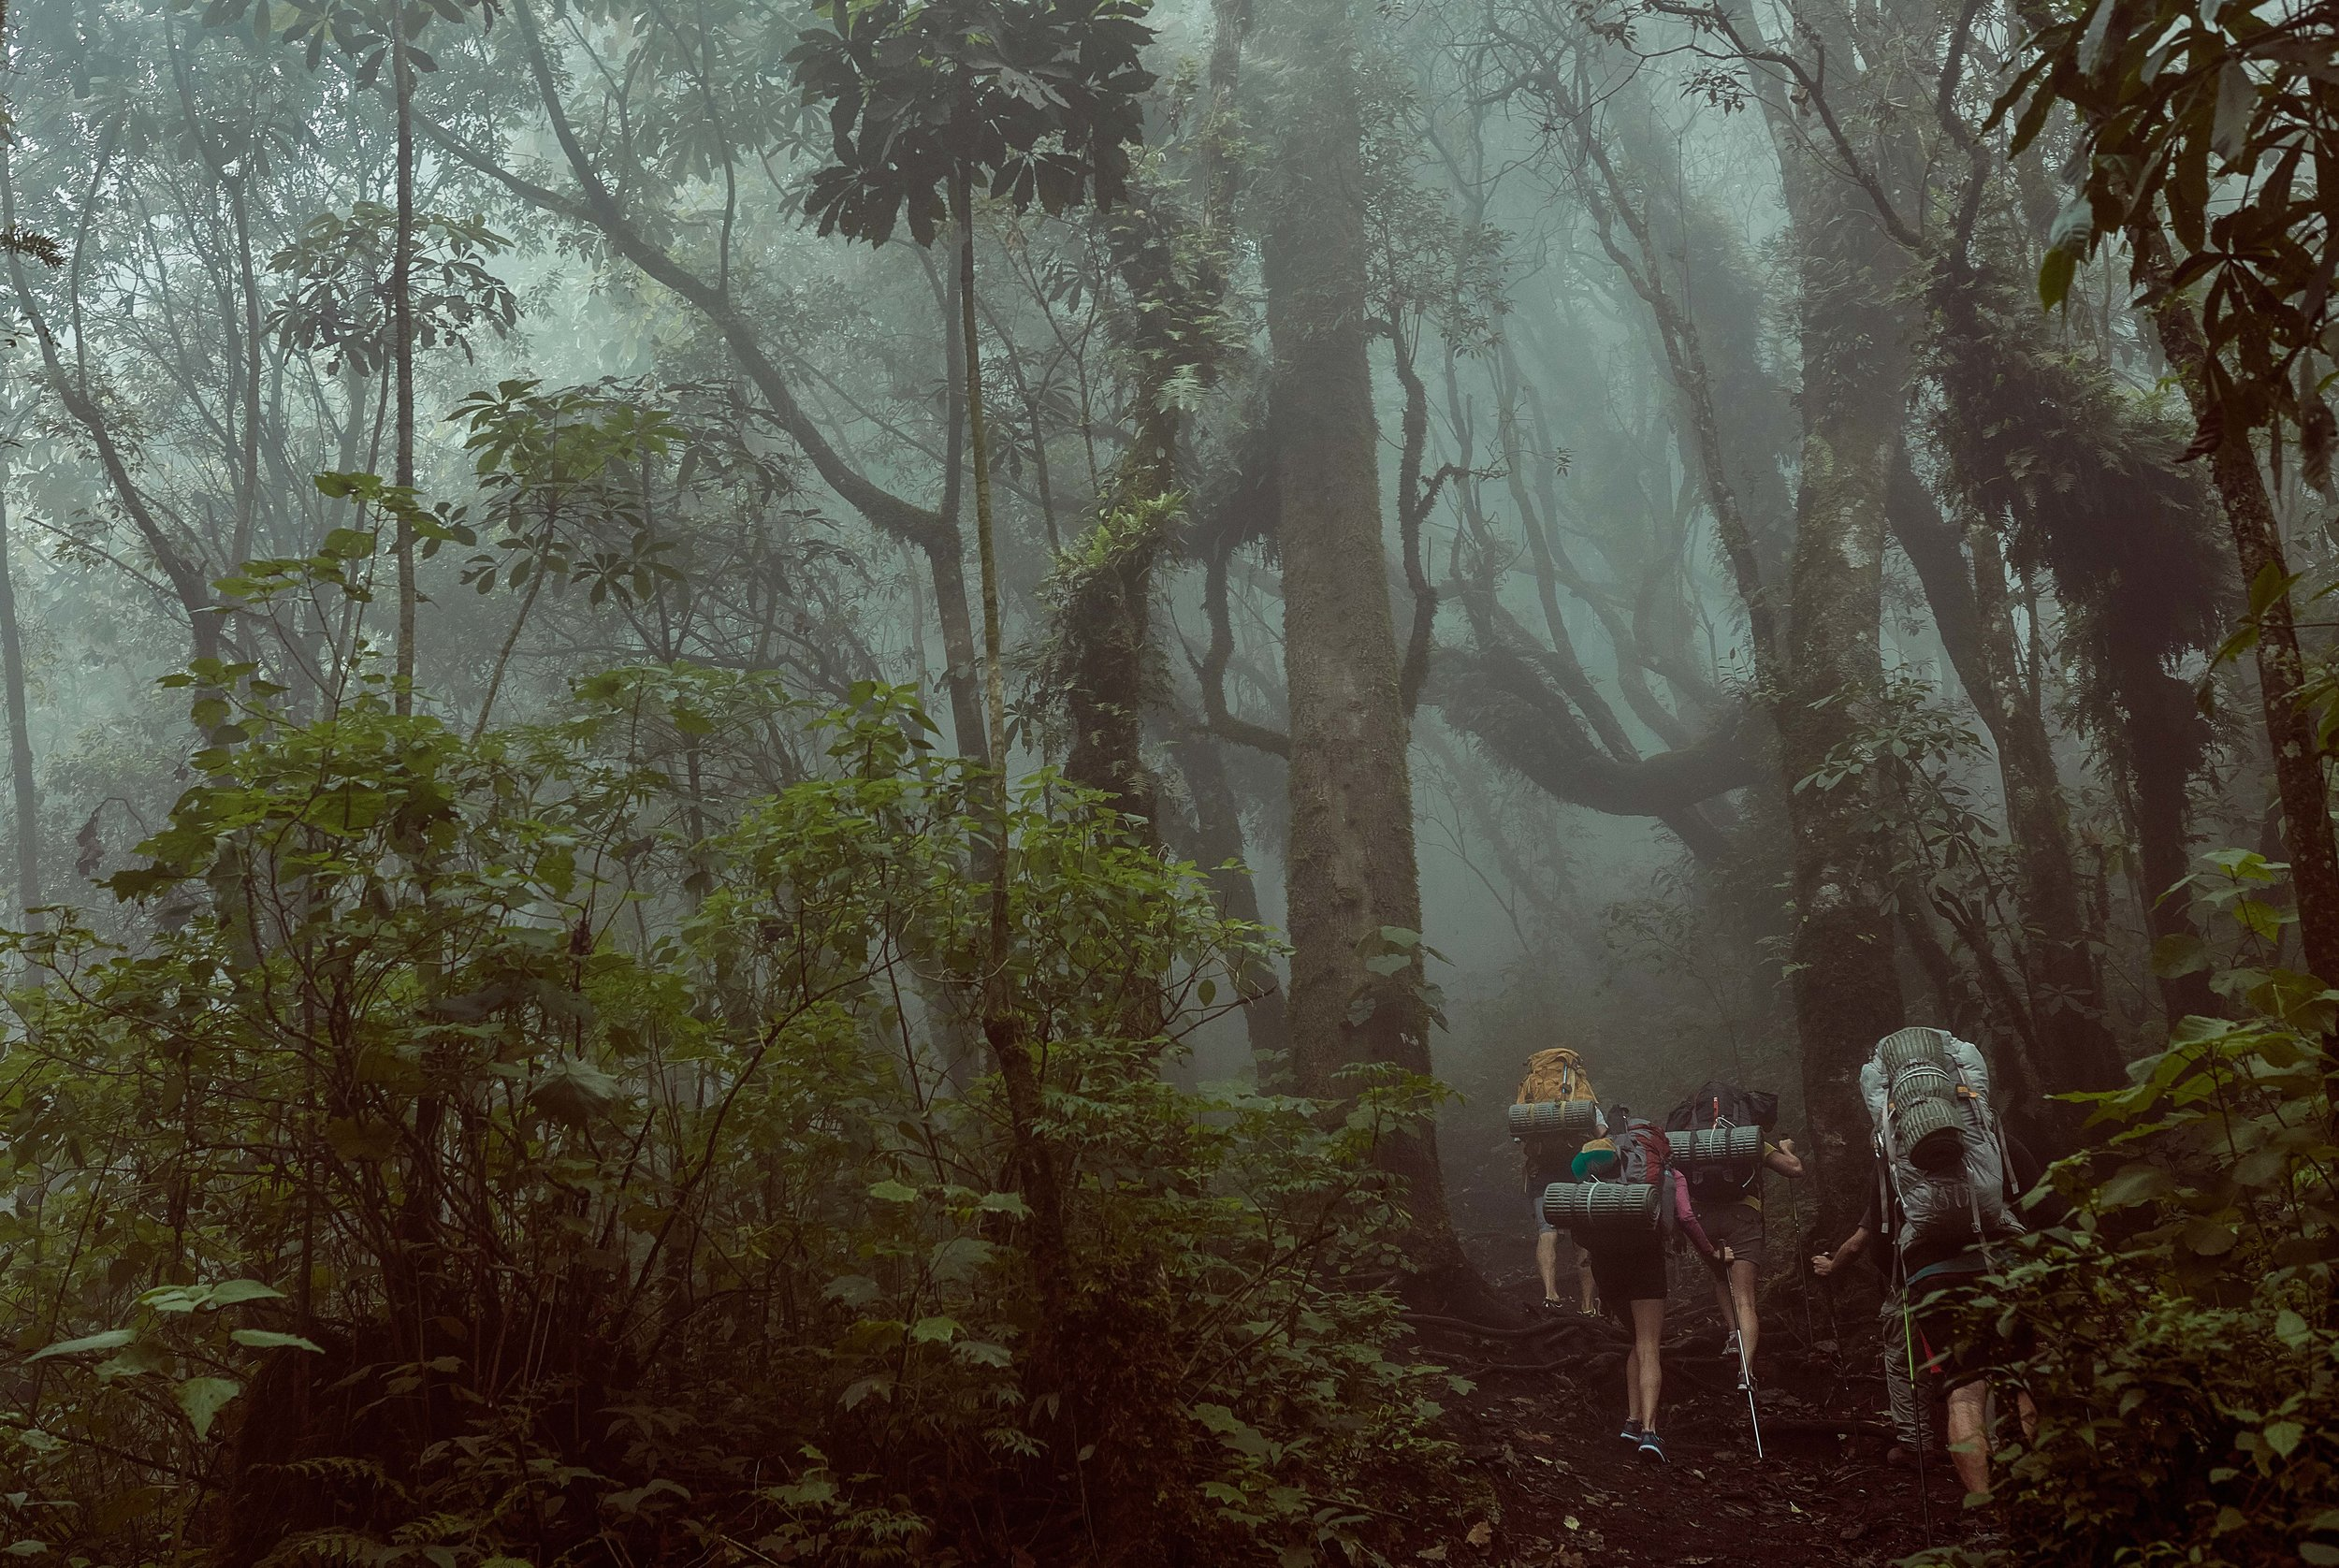 Hiking up through the cloud forest. Photo by Willie Kessel.